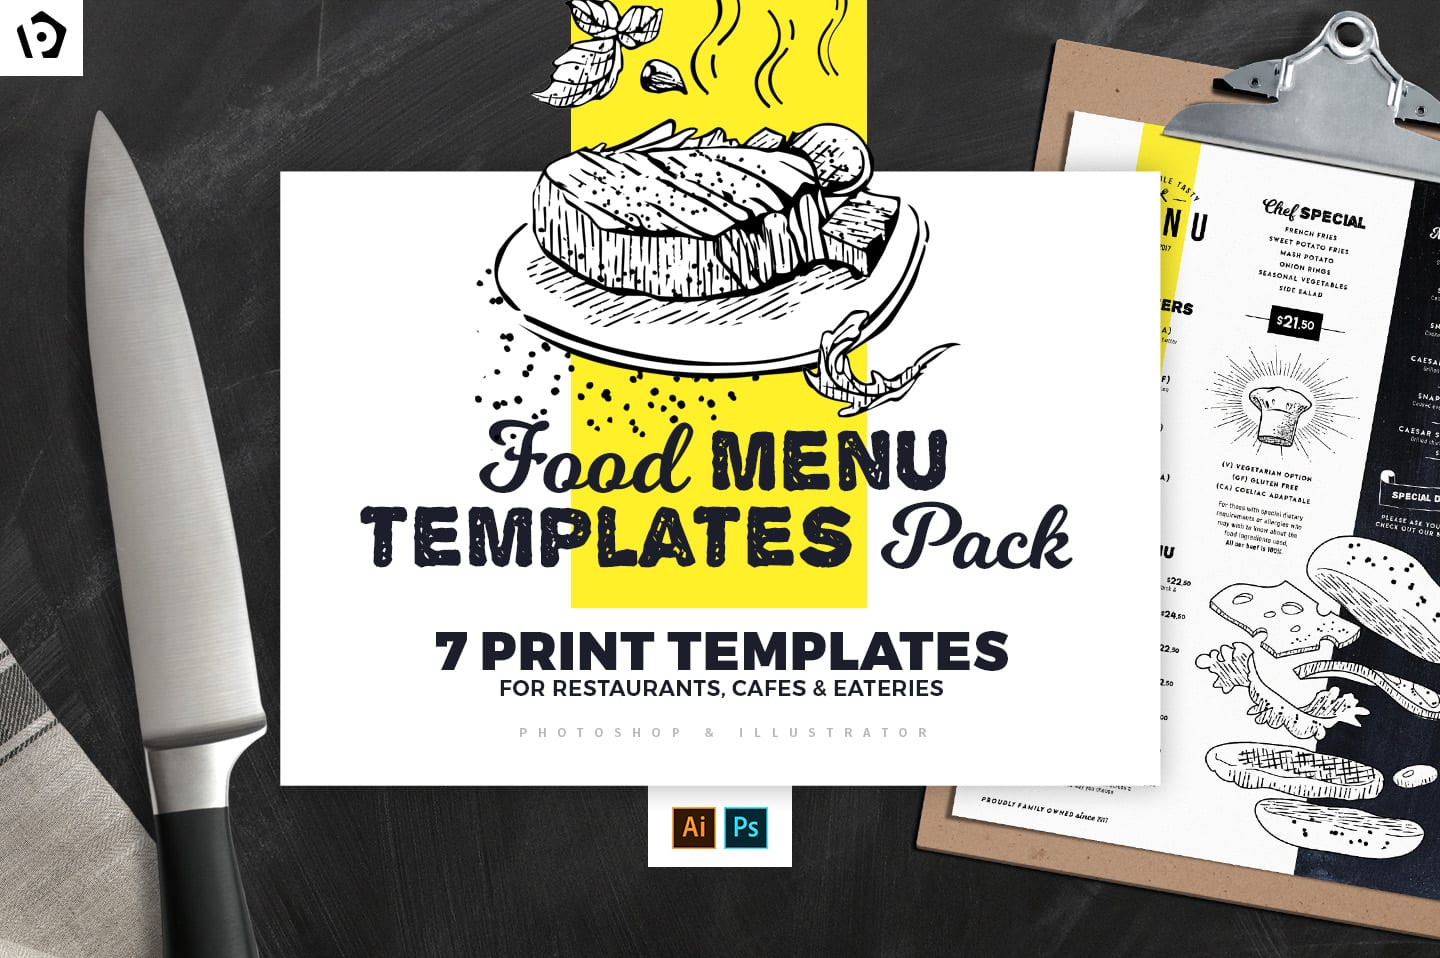 Food Menu Templates Pack